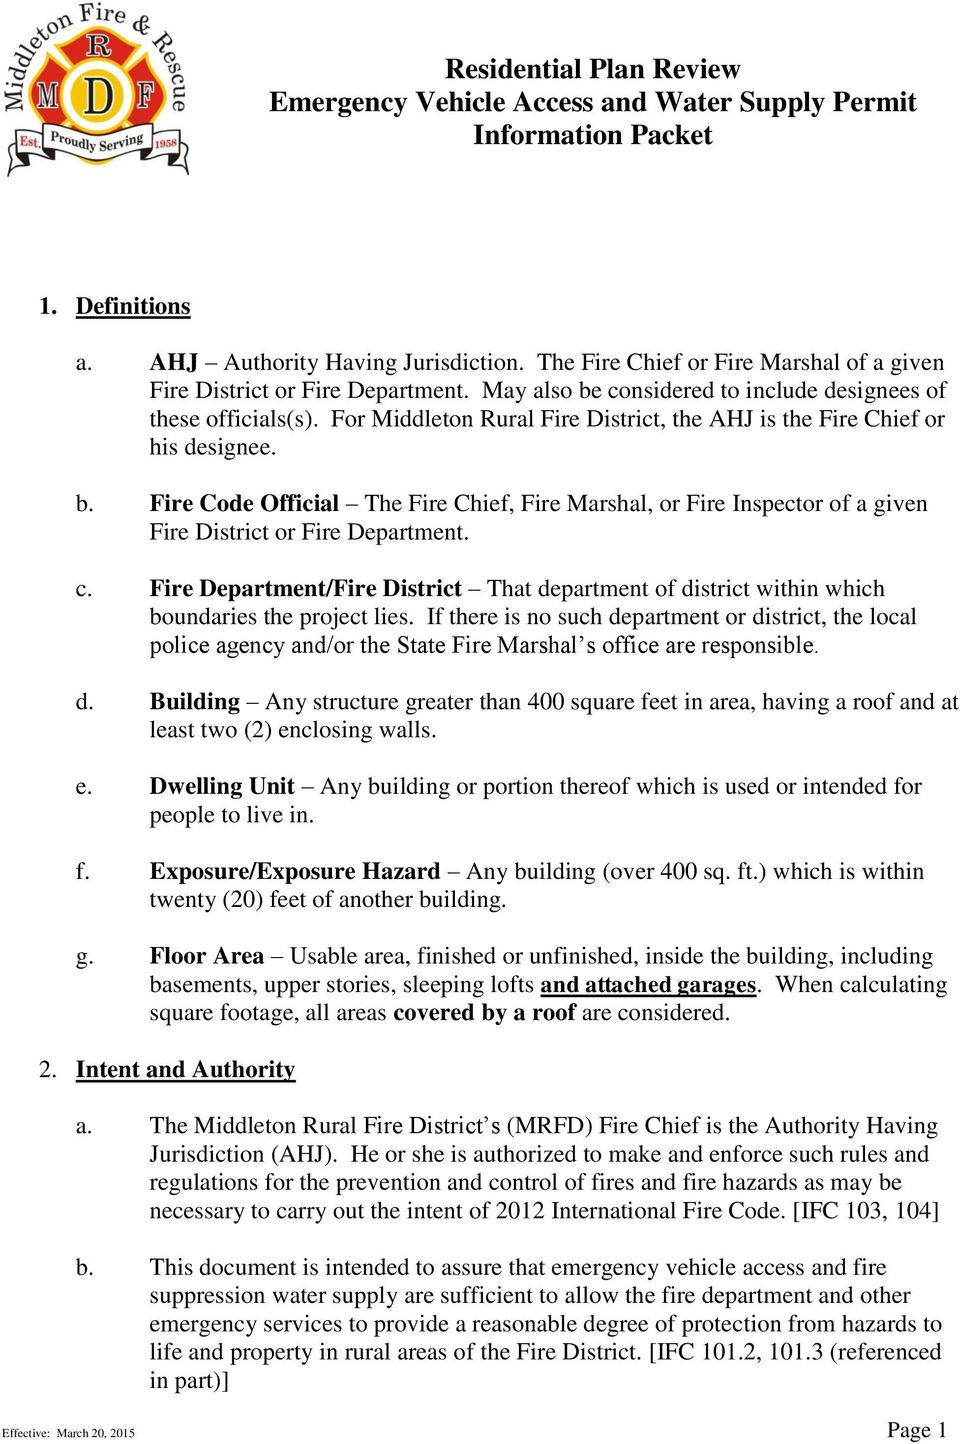 For Middleton Rural Fire District, the AHJ is the Fire Chief or his designee. b. Fire Code Official The Fire Chief, Fire Marshal, or Fire Inspector of a given Fire District or Fire Department. c.